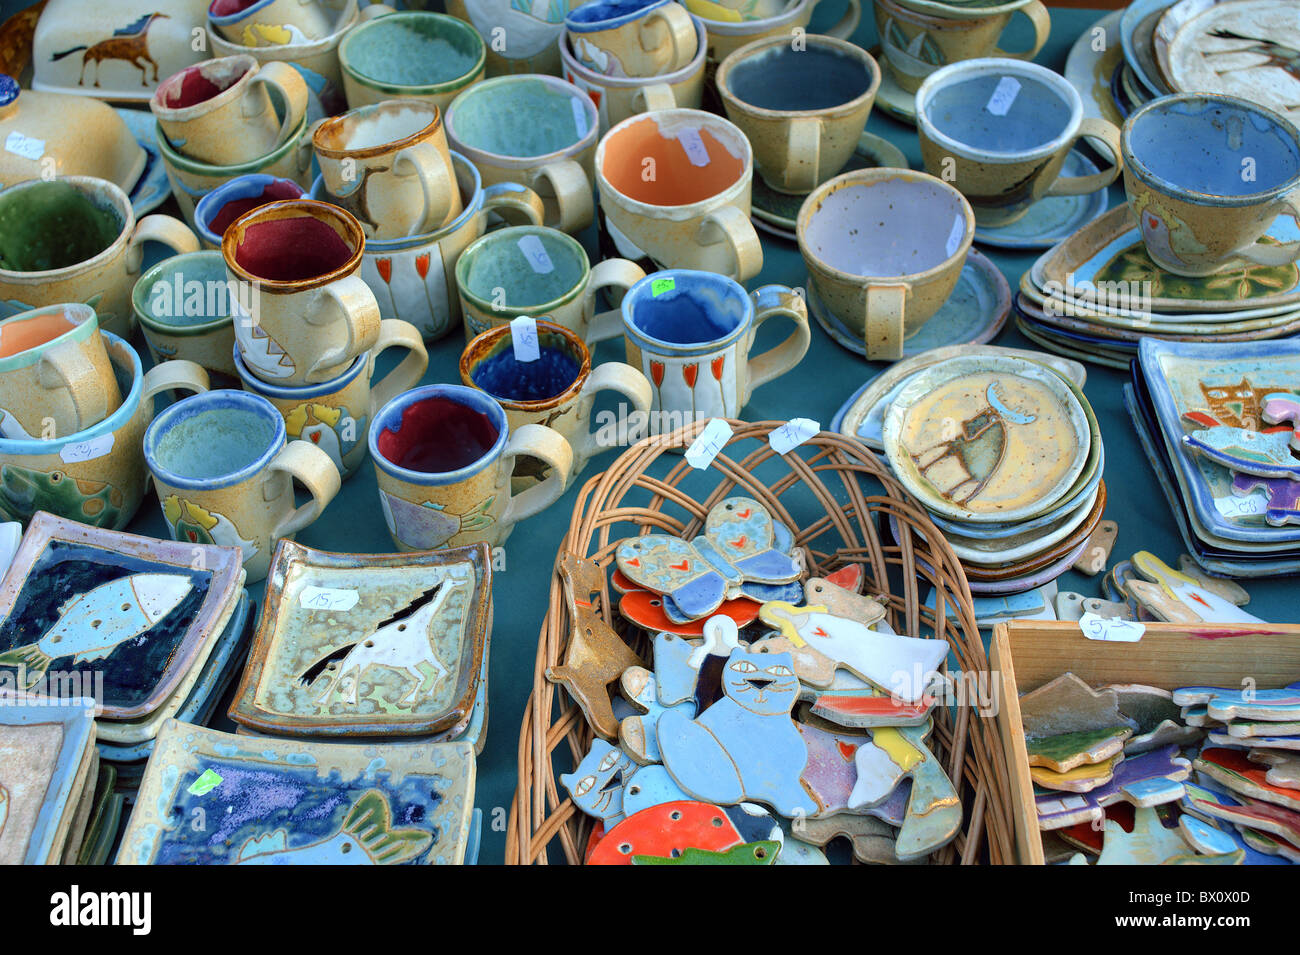 Artistic Handicraft Pottery Mugs Plates Stock Photo Alamy